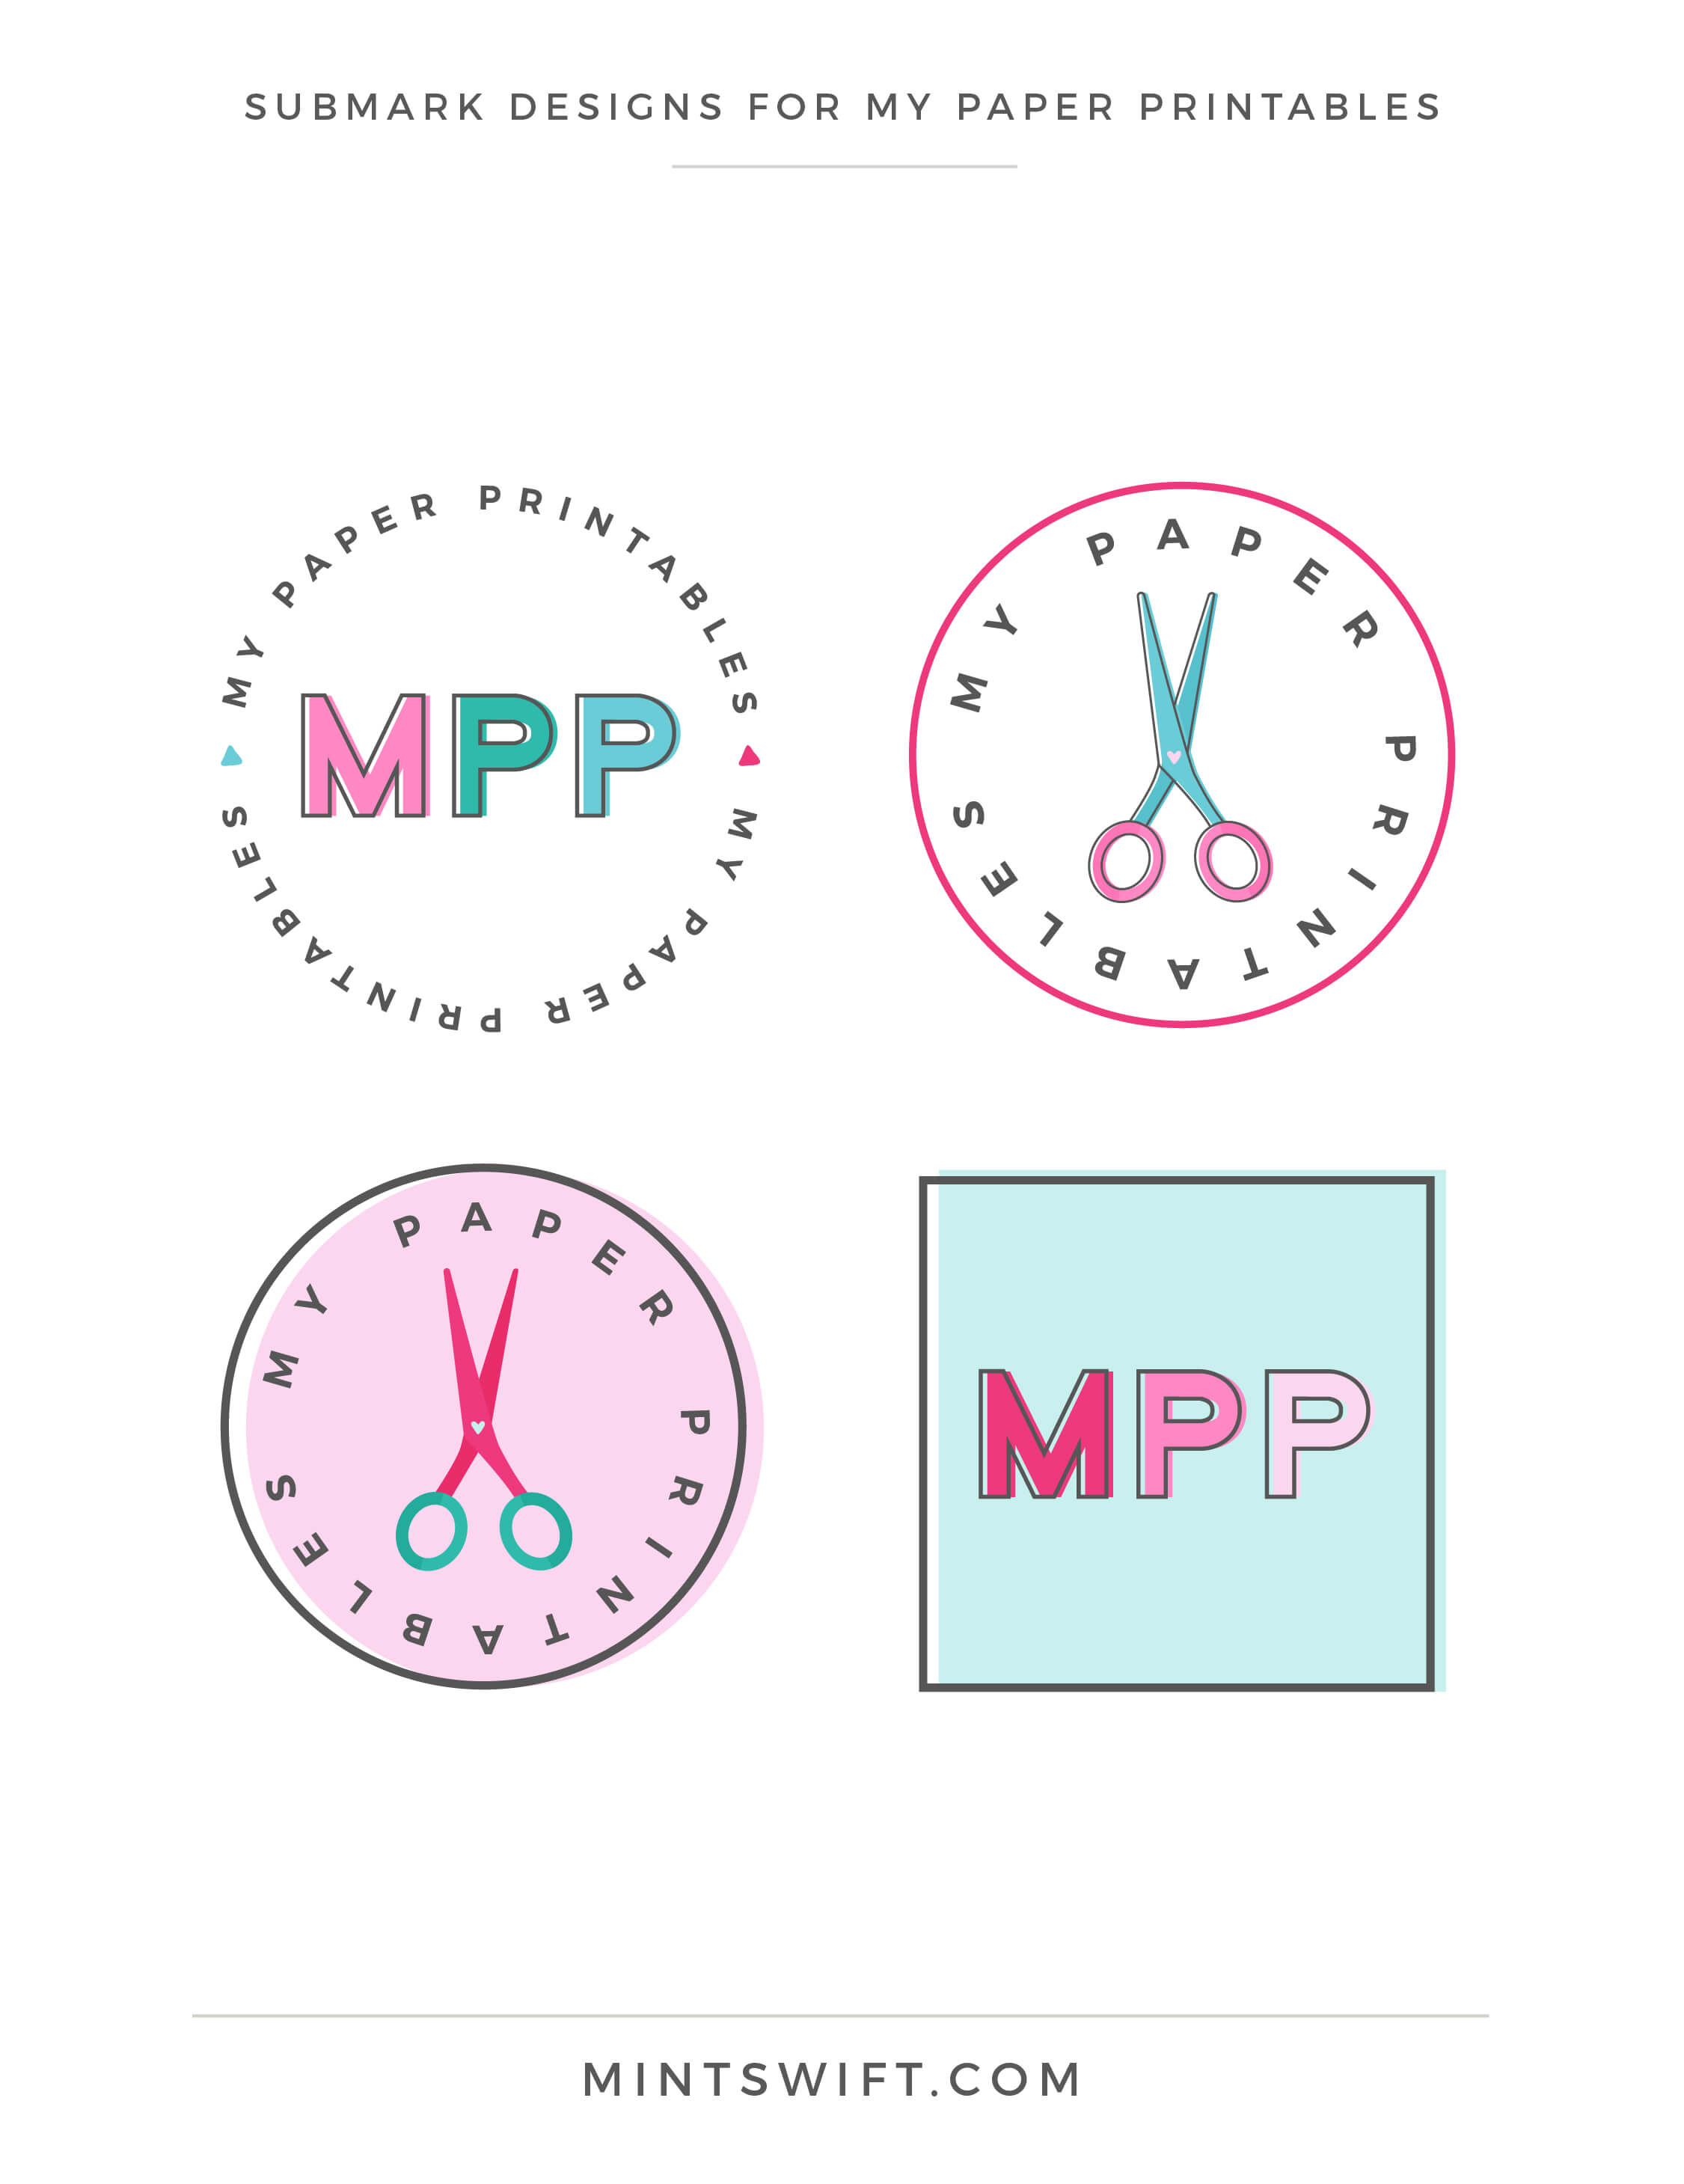 My Paper Printables - Submark Designs - Brand Design - MintSwift